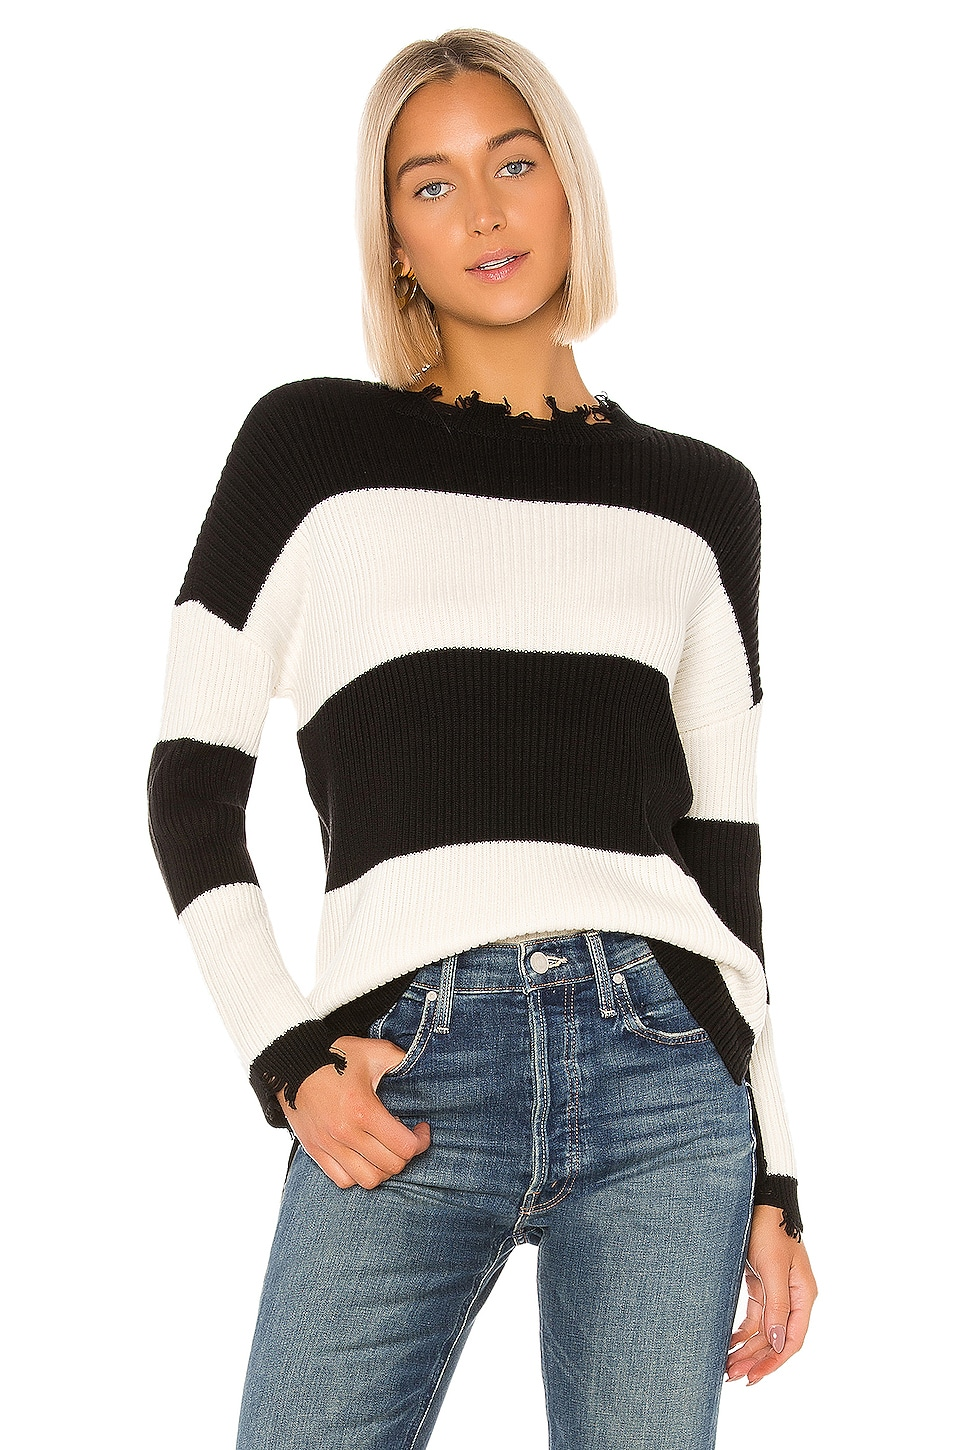 House of Harlow 1960 X REVOLVE Gracelyn Sweater in Black & White stripe